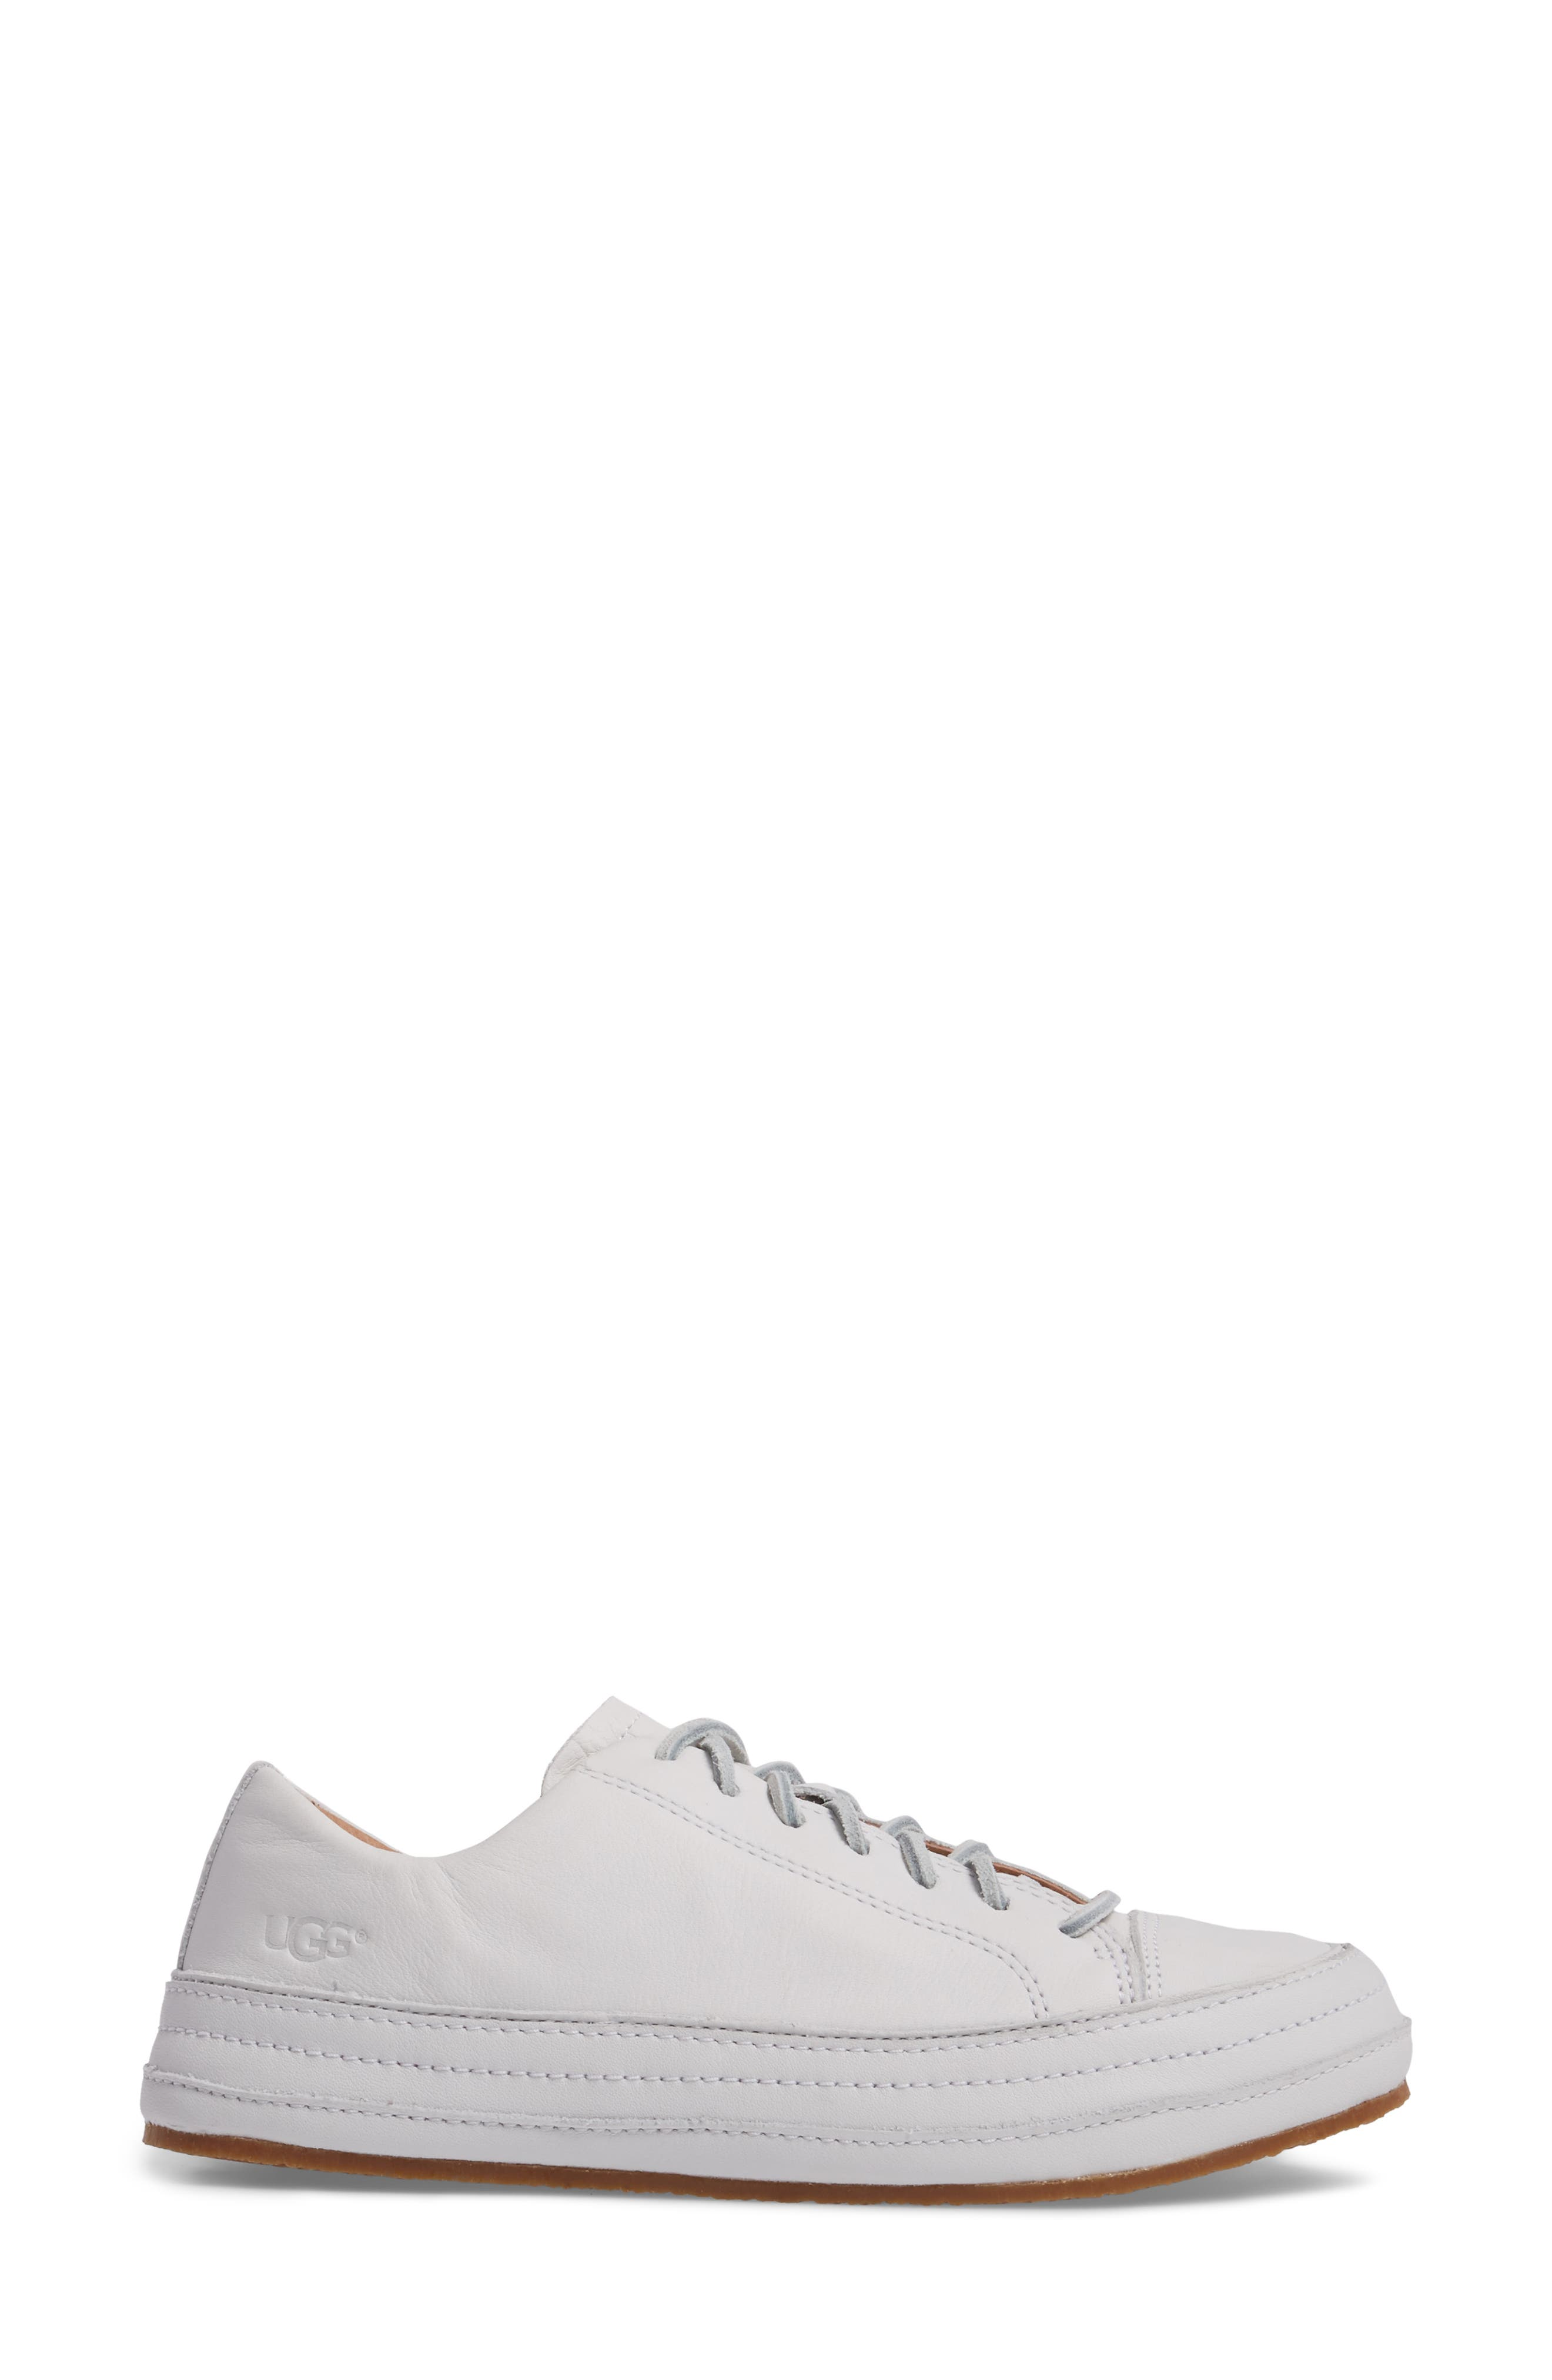 Alternate Image 3  - UGG® Blake Sneaker (Women)